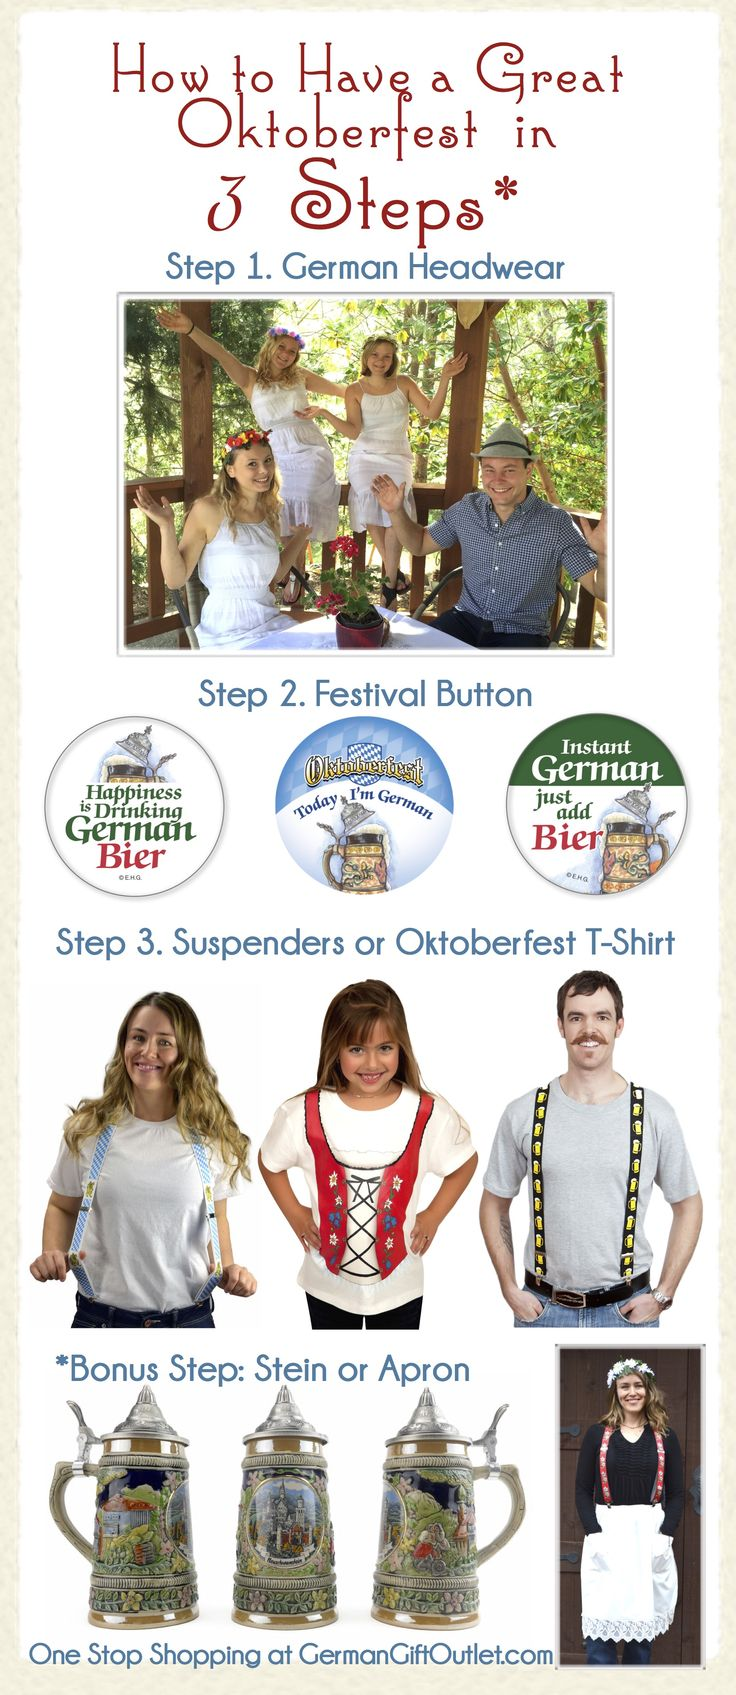 462 best oktoberfest costume contest ideas images on pinterest oktoberfest party decorations german beer steins german costumes beer glasses and beer boots cuckoo clocks and huge selection of european gift items solutioingenieria Gallery